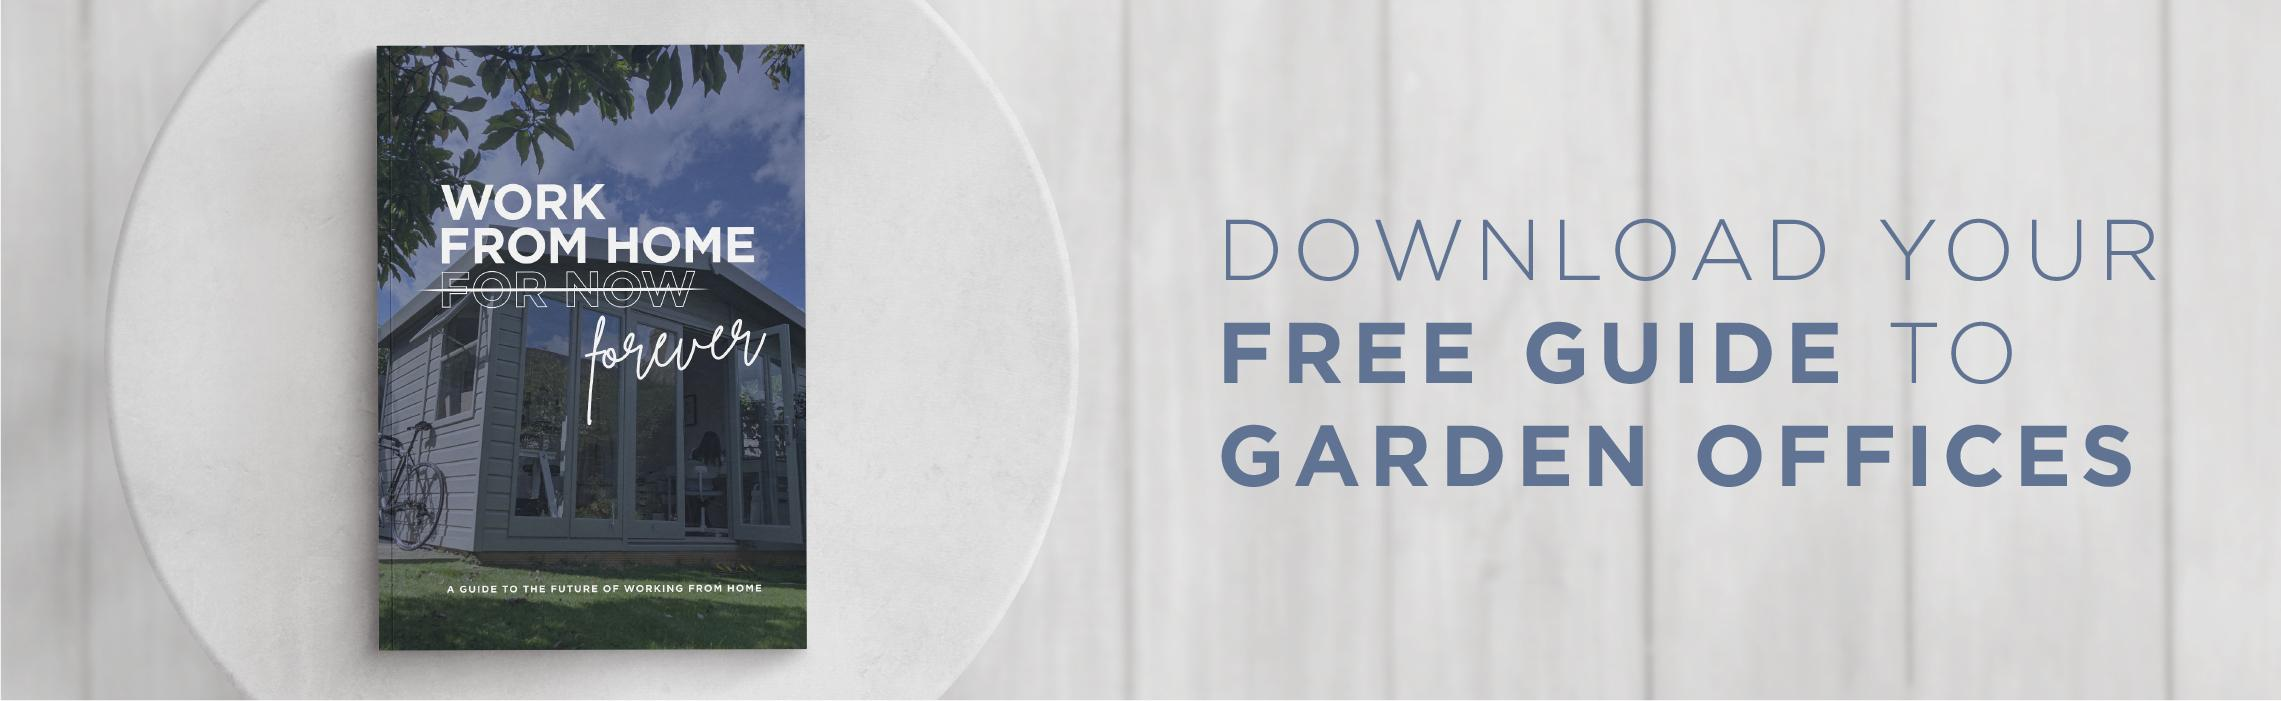 Download your free guide to garden offices.